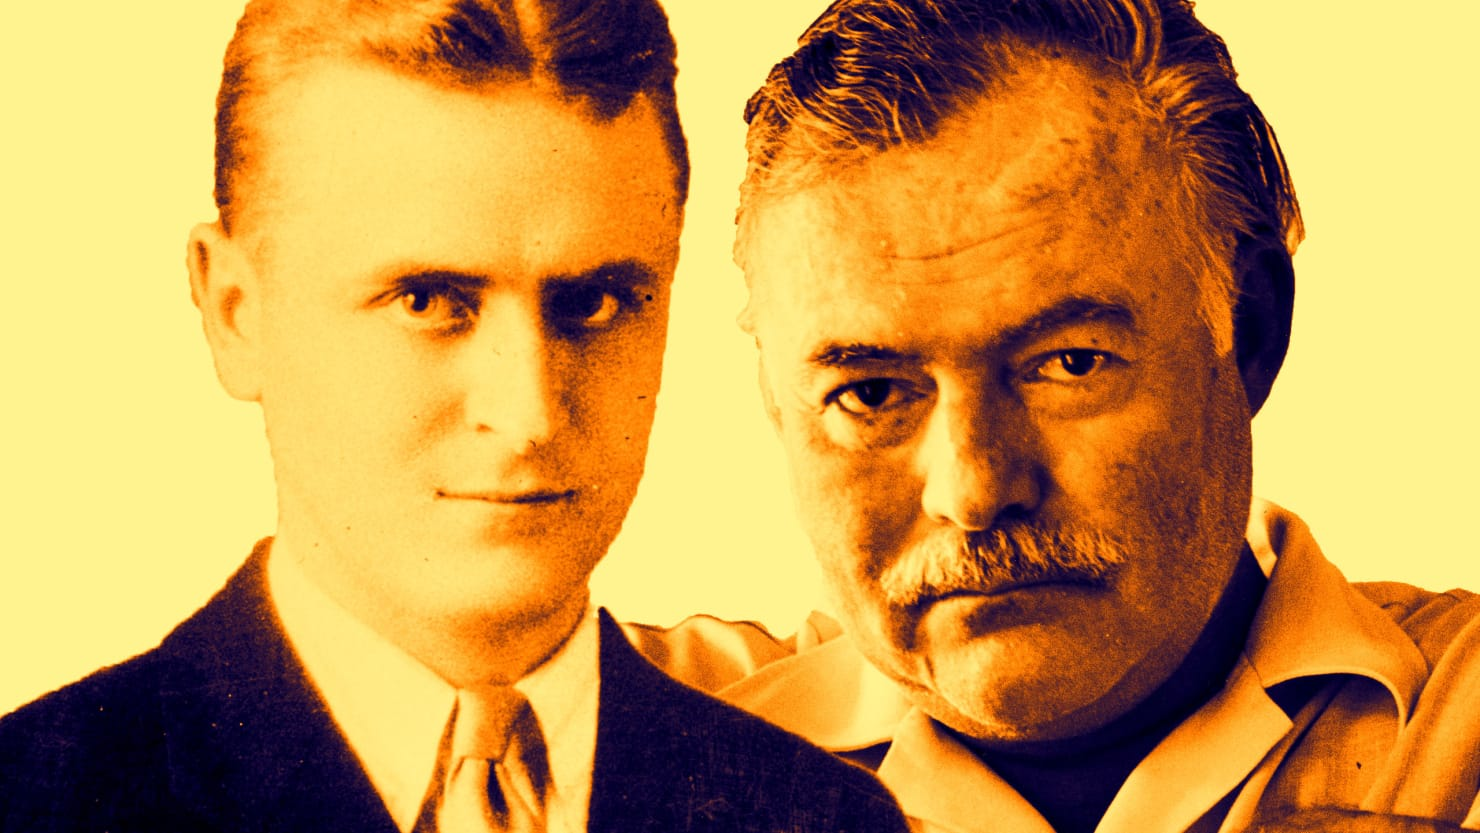 The Cocktail that Brought Ernest Hemingway & F. Scott Fitzgerald Together